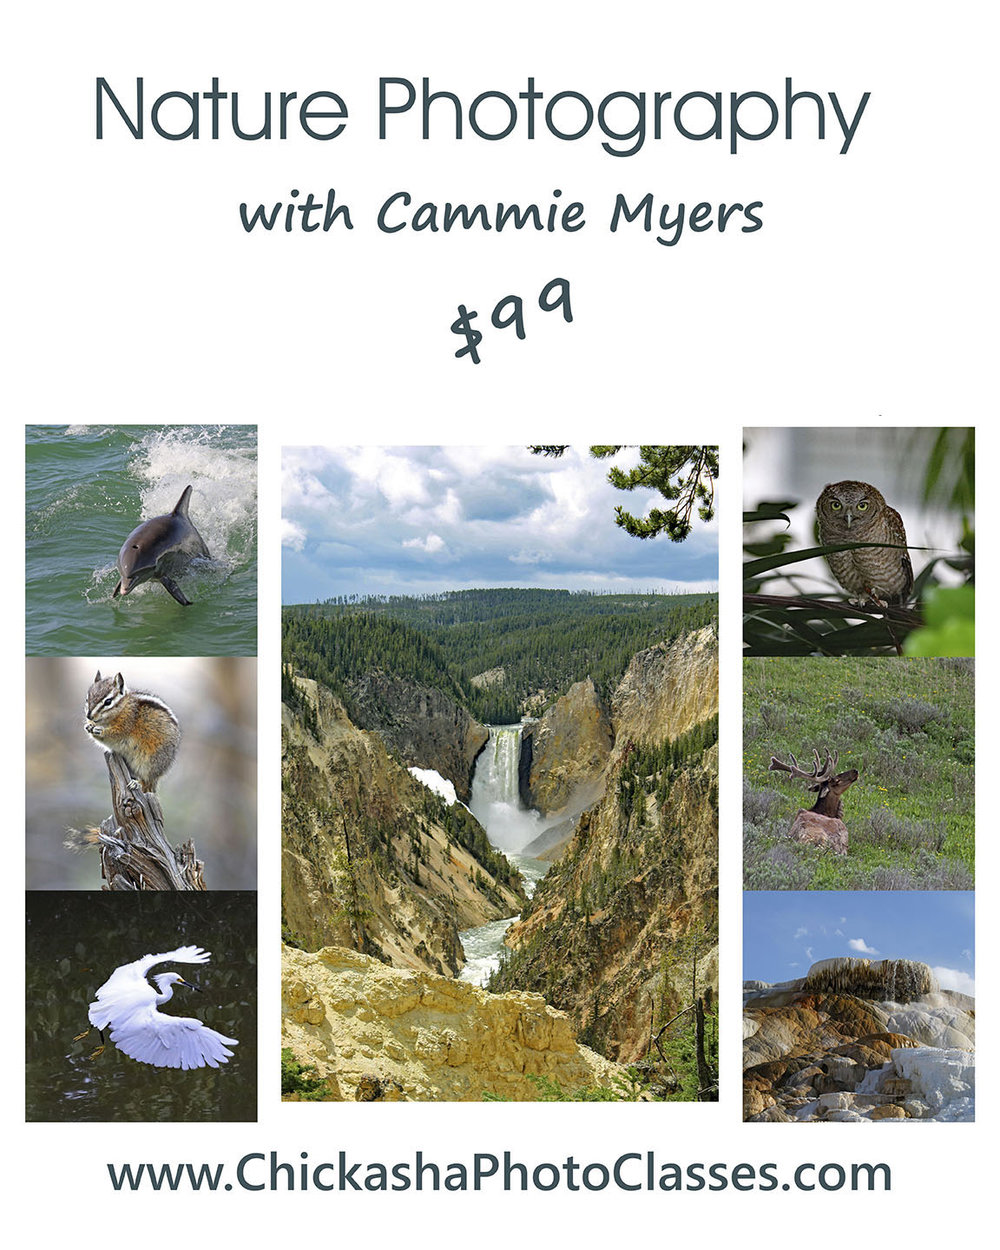 Cammie Myers nature photography poster 72 res WEB jpg.jpg